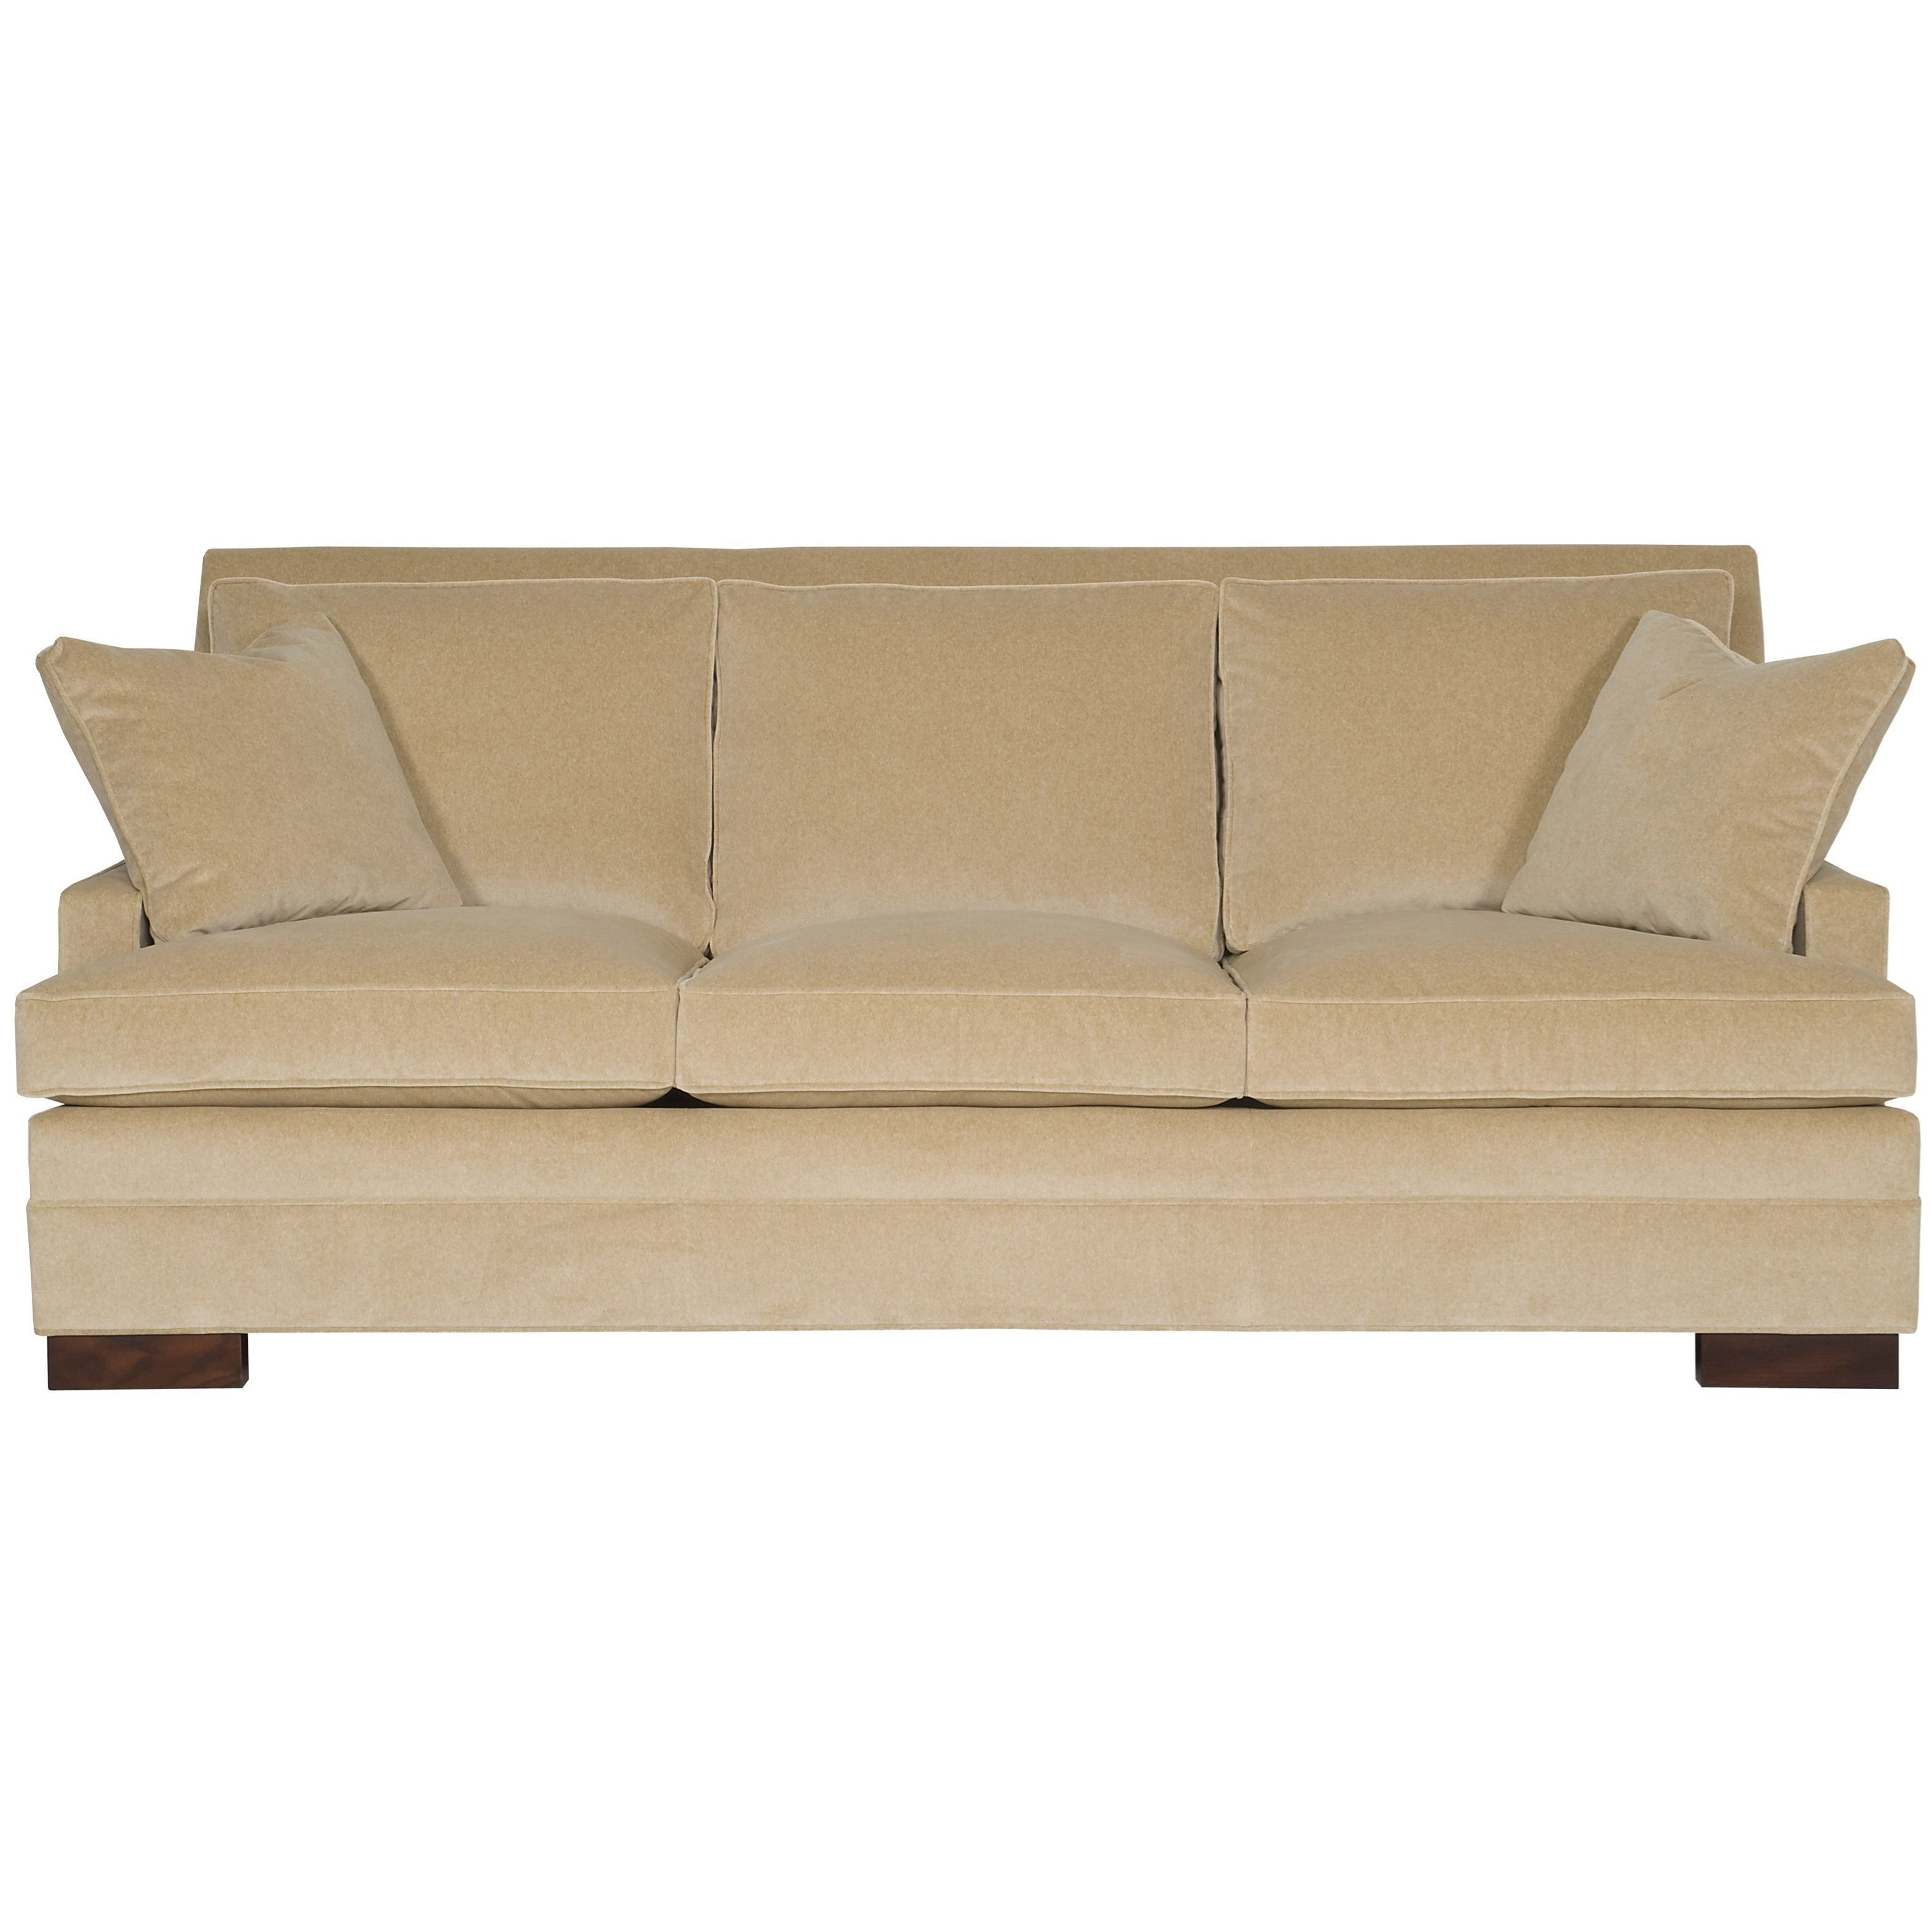 American Bungalow Riverside 3 Seat Sofa by Vanguard Furniture at Baer's Furniture